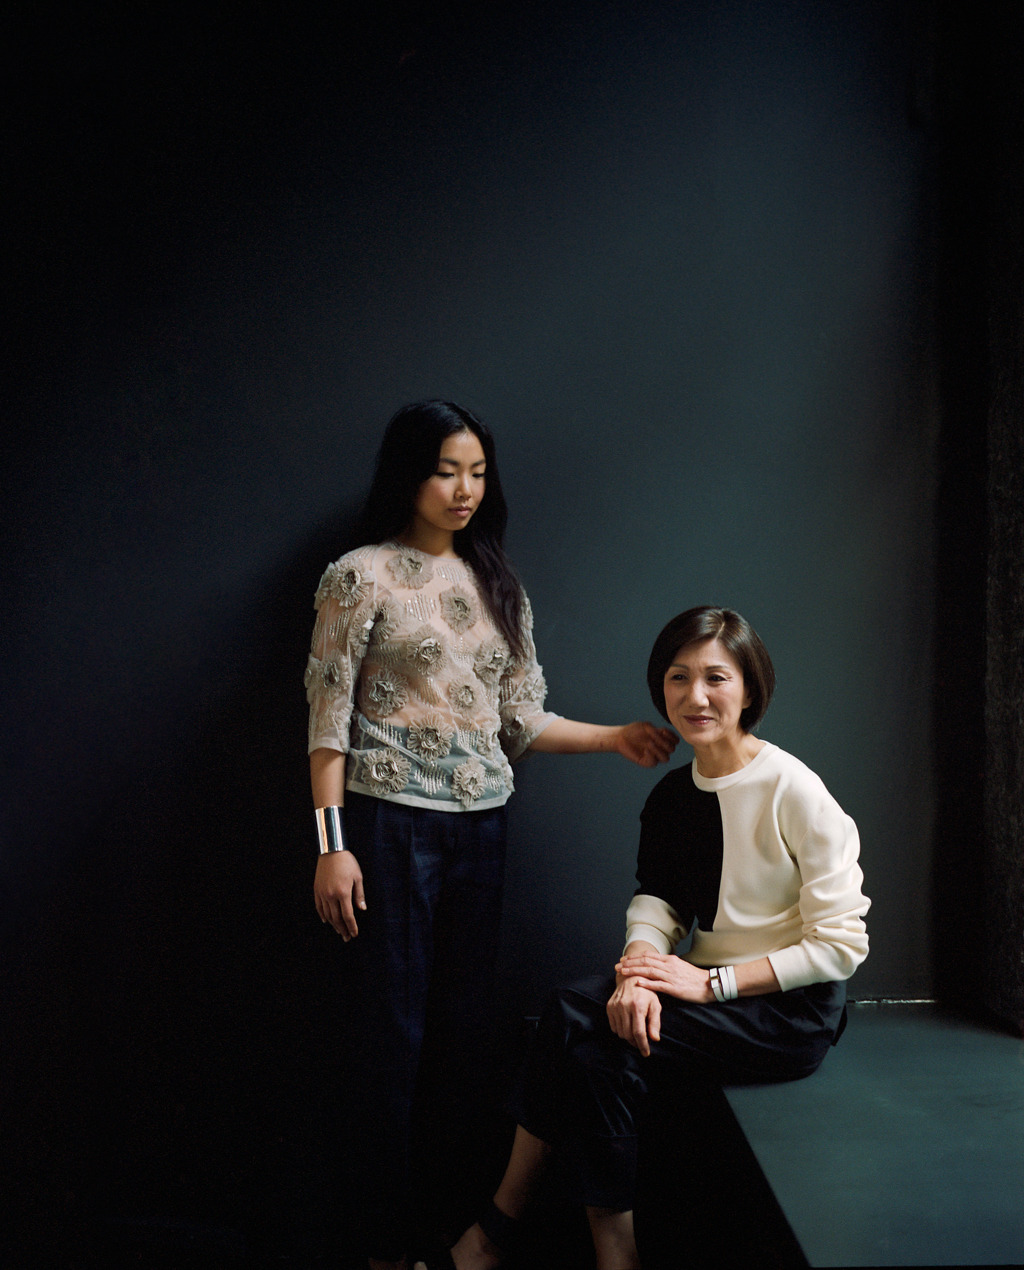 alexihobbs:  Mi Kyum Kim and her daughter, Jessica WeeMontreal, 2013  THAT LIGHT. DAMN GURL!